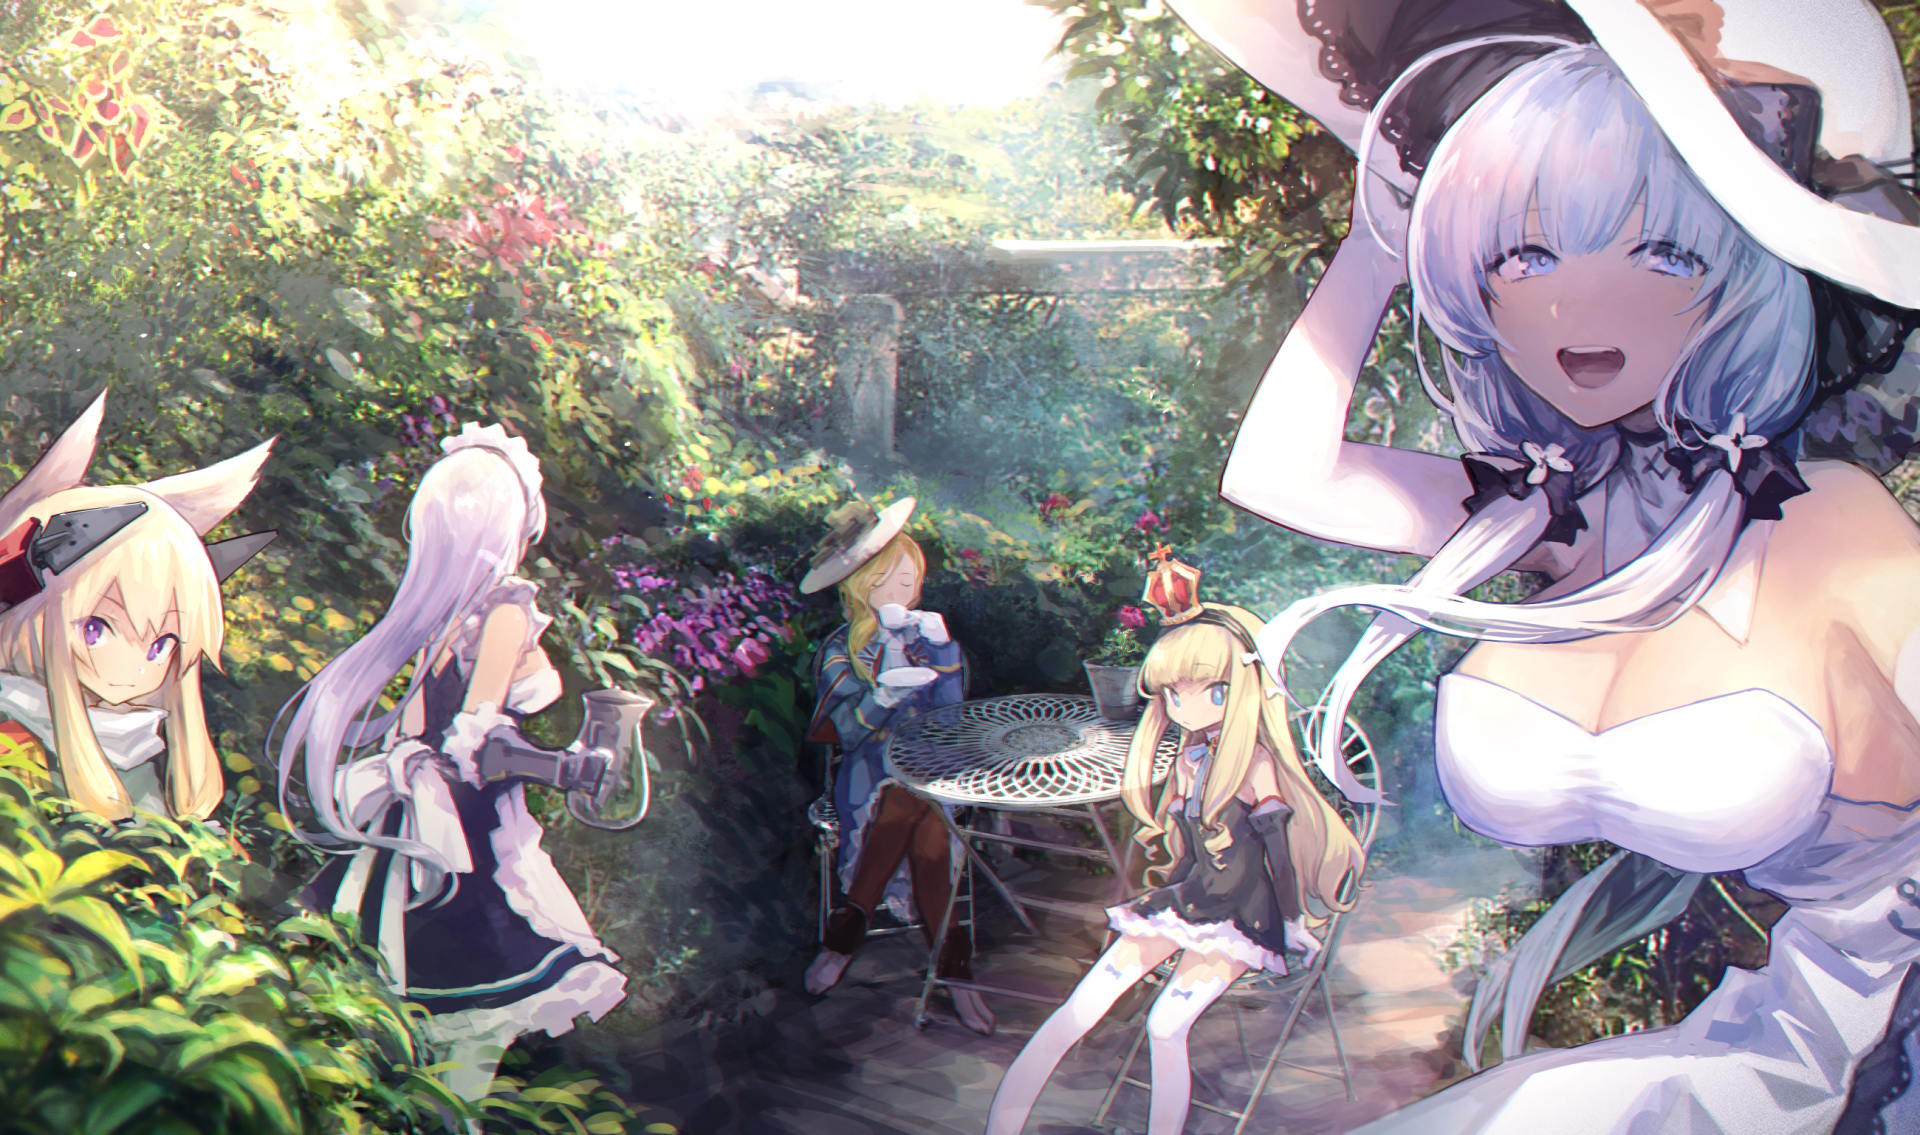 20 Belfast Azur Lane Hd Wallpapers Background Images Wallpaper Abyss Collection of the best azur lane wallpapers. 20 belfast azur lane hd wallpapers